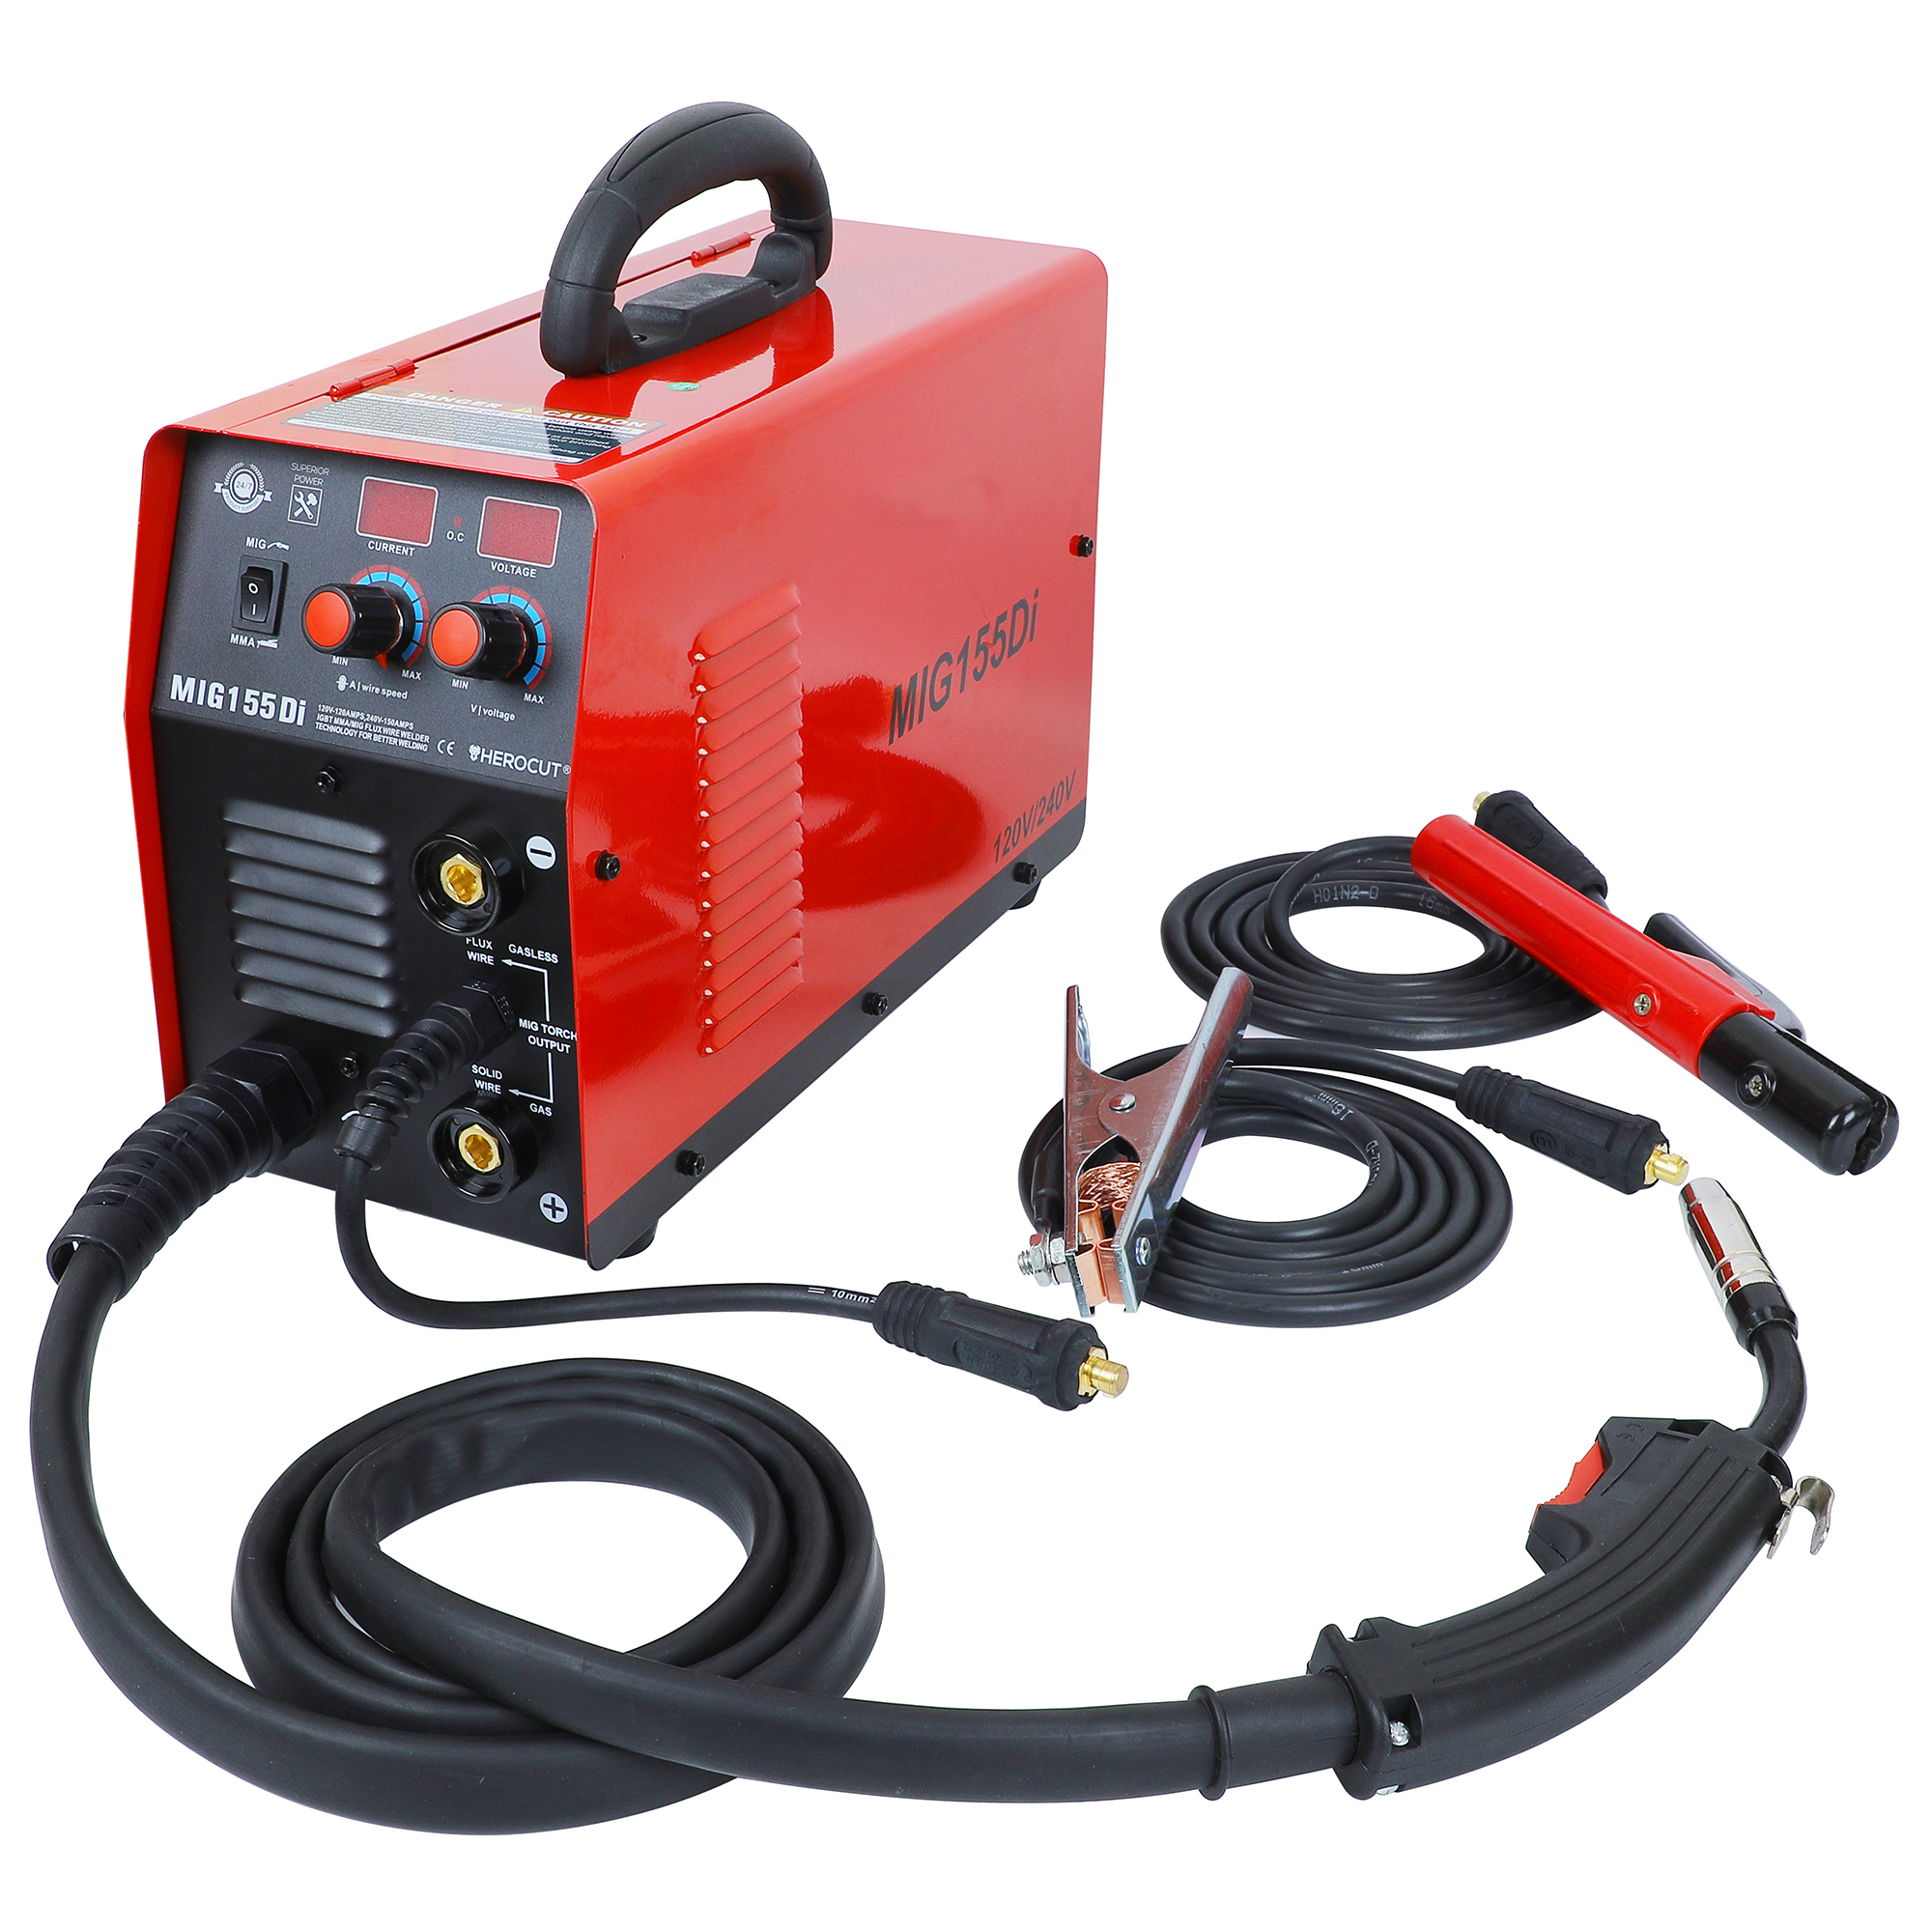 MIG155Di IGBT MMA/MIG/Flux Wire/Solid Wire Welding Machine Dual Voltage 110V/220V MIG Welding Portable Mig MMA Welder